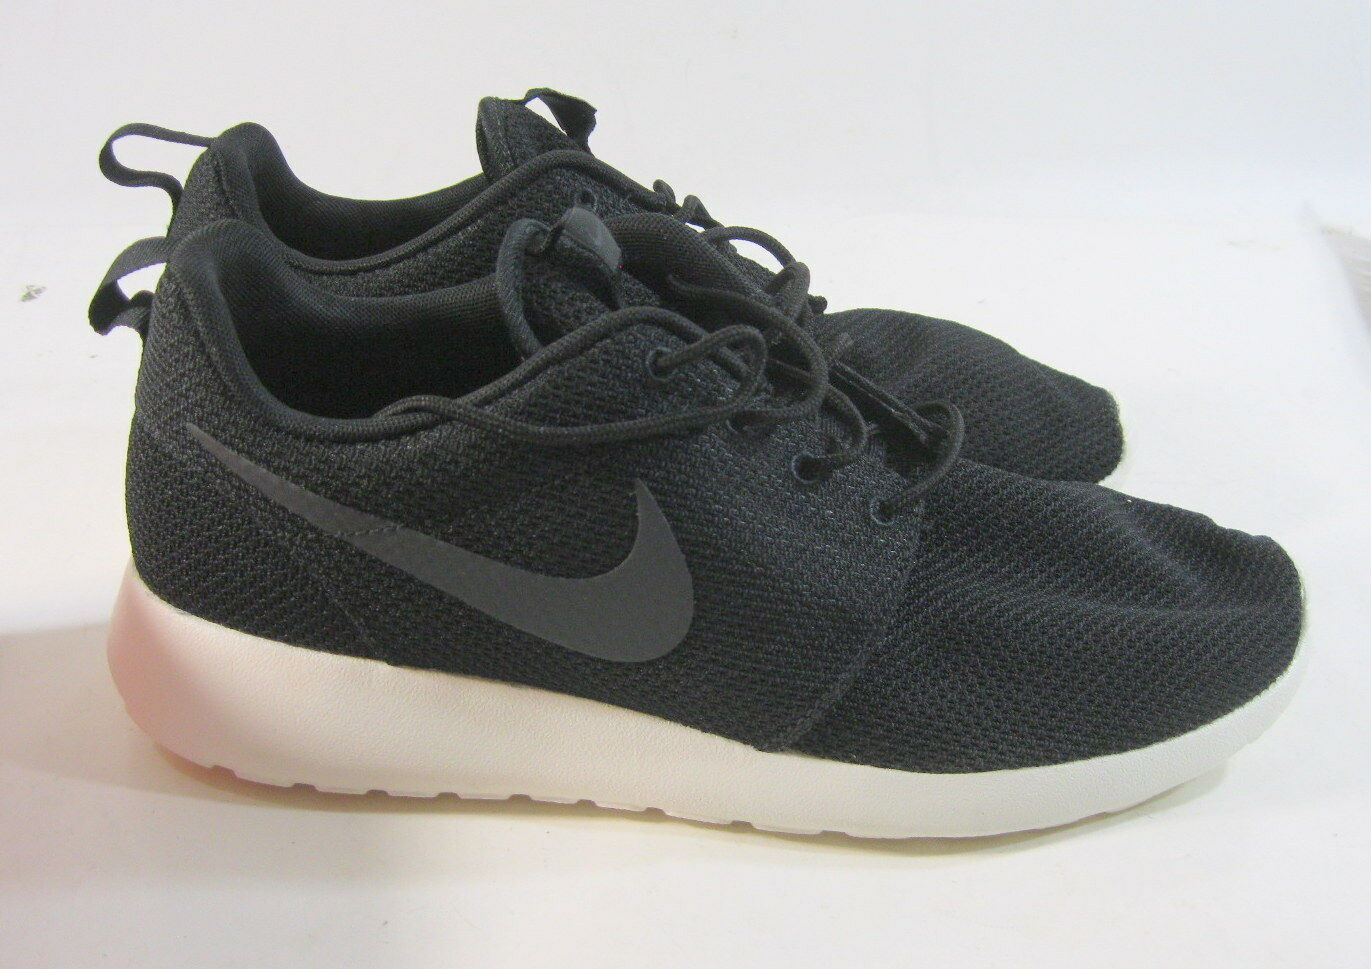 new Nike Roshe One Casual Shoes 511881 010 Black/White Size 10.5